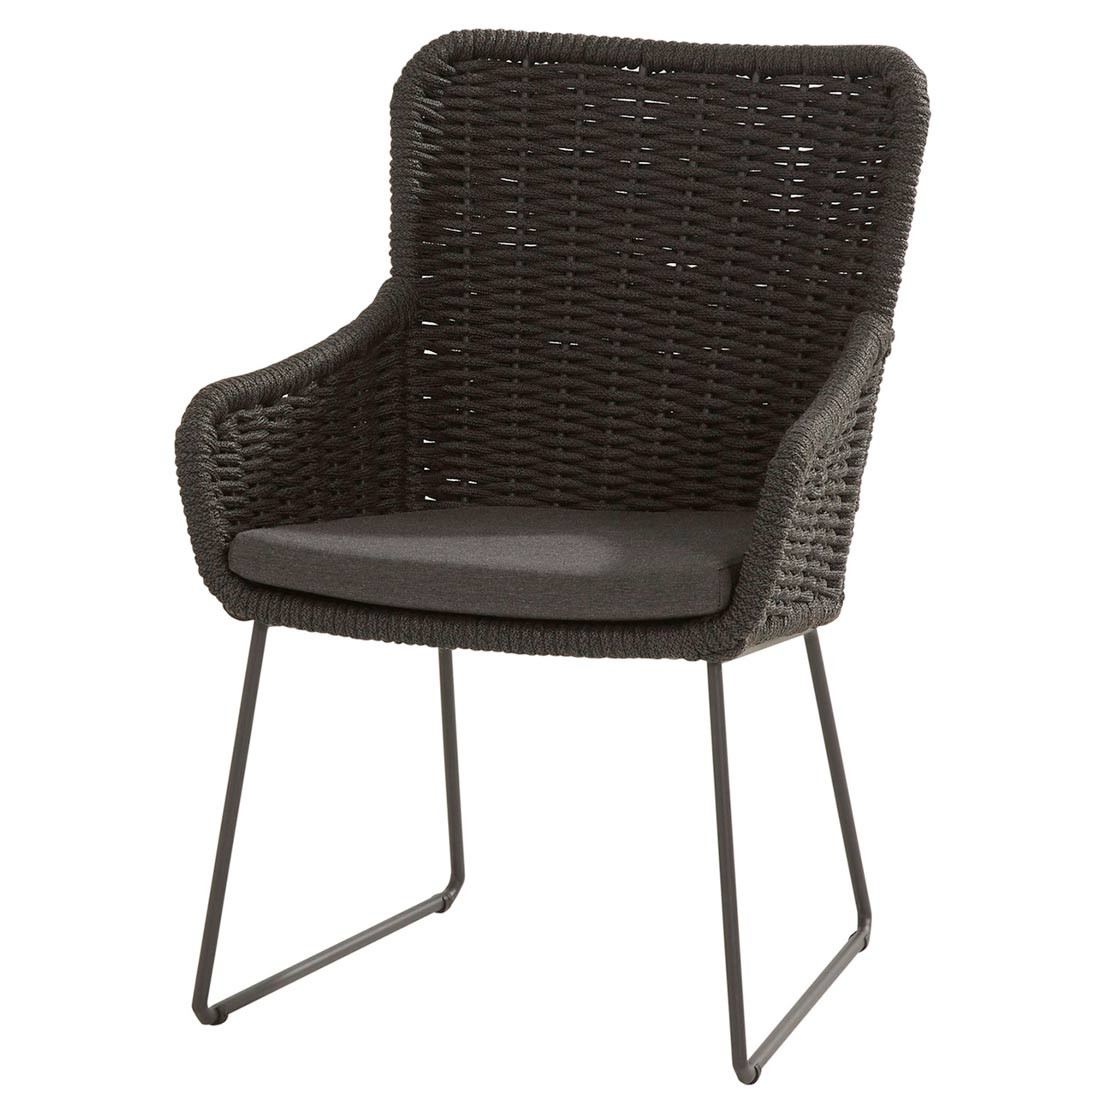 Wing dining chair with cushion